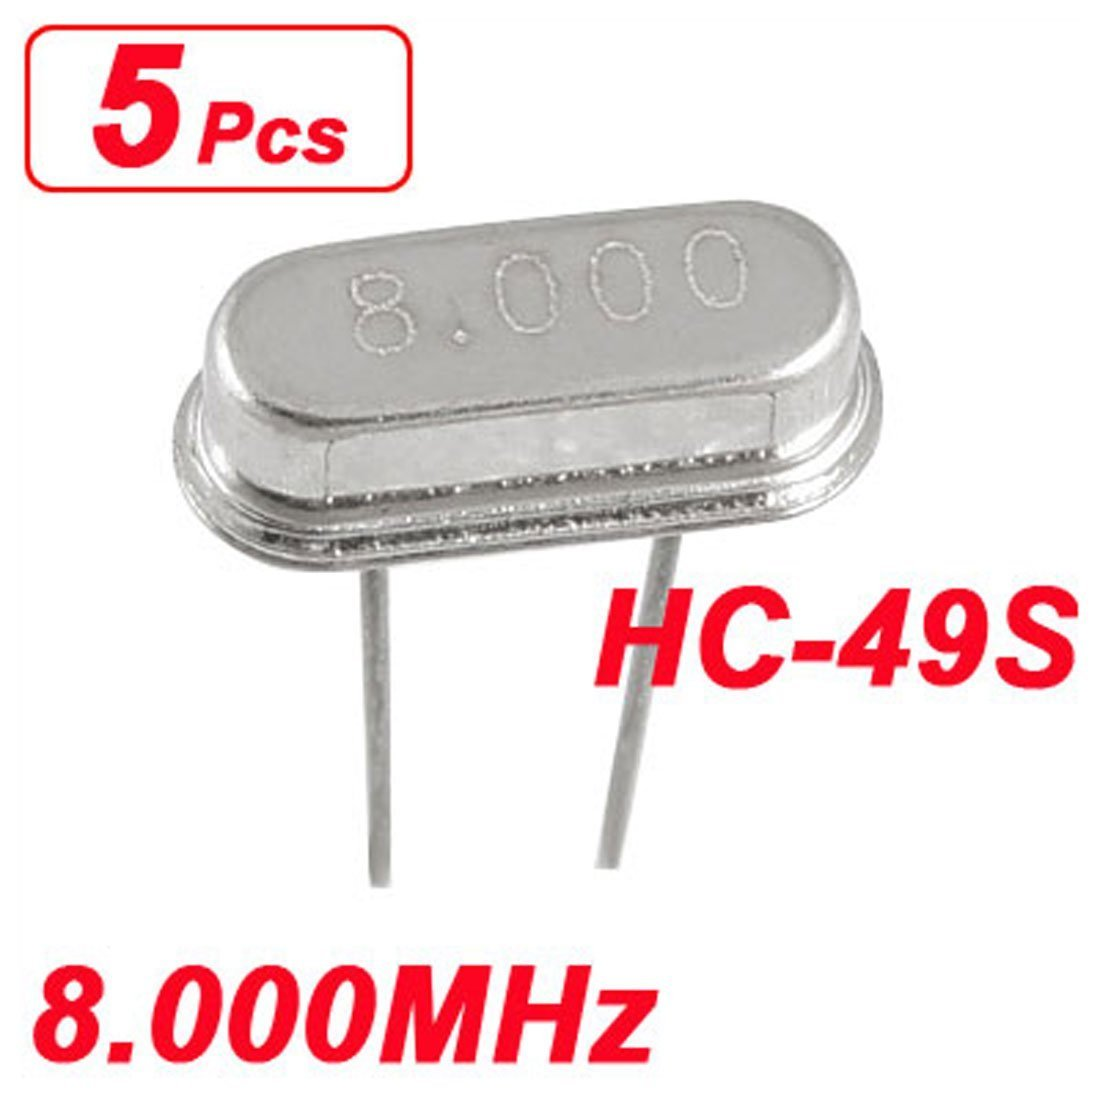 sourcingmap 5 x 8.000 MHz 8MHz Crystal HC-49S DIP Mounting Crystal Oscillator a11102000ux0070